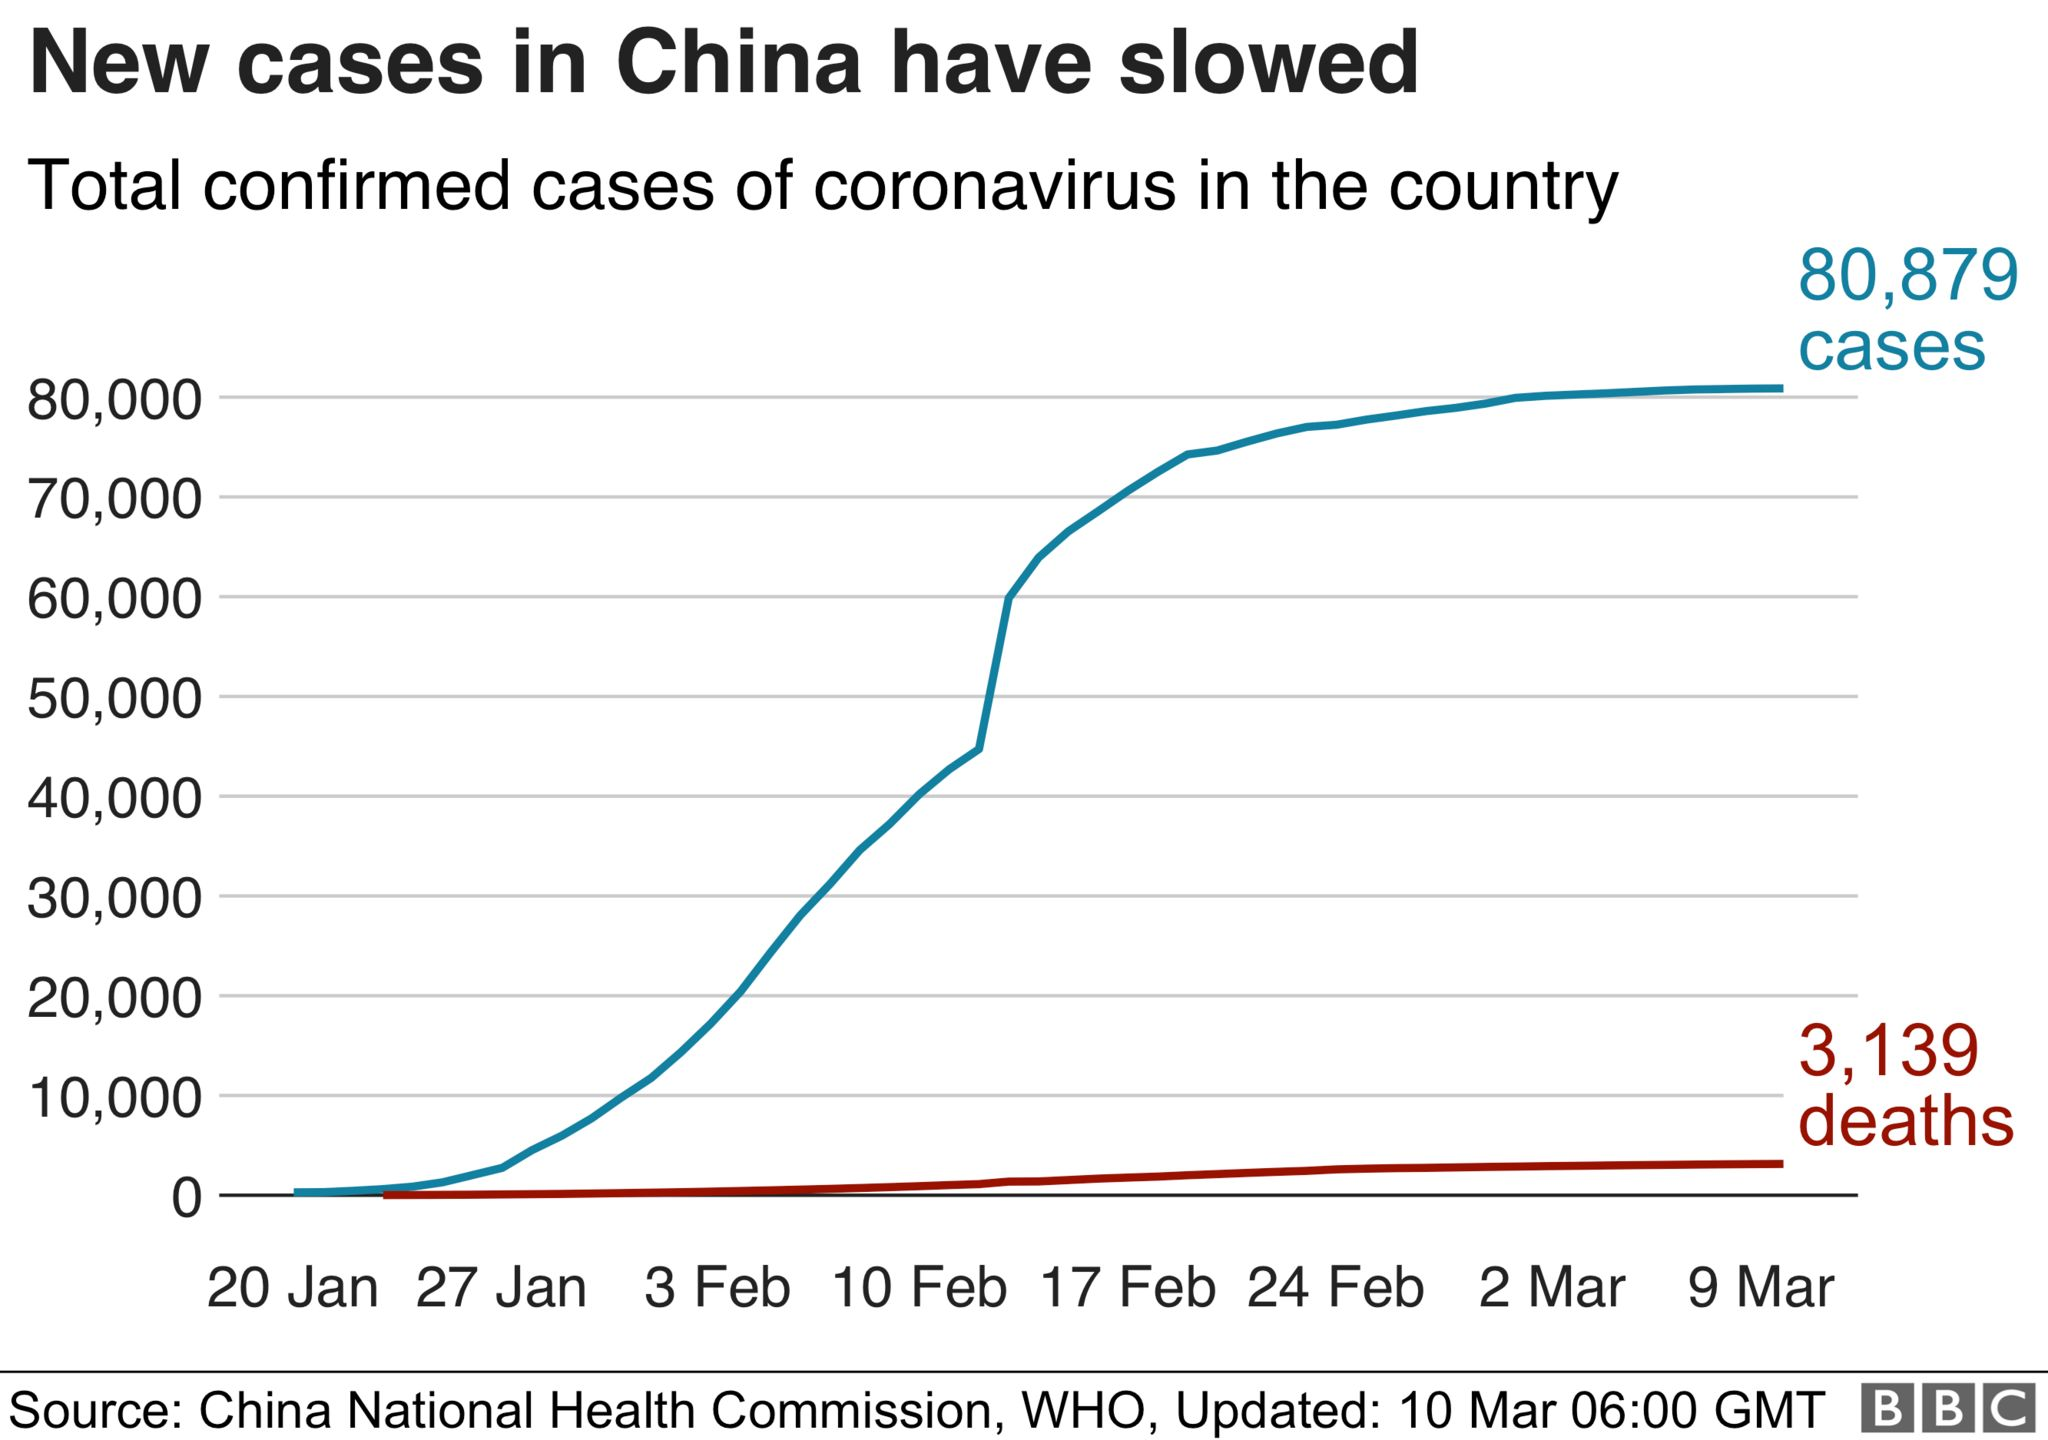 A graph showing the decrease in new coronavirus cases in China